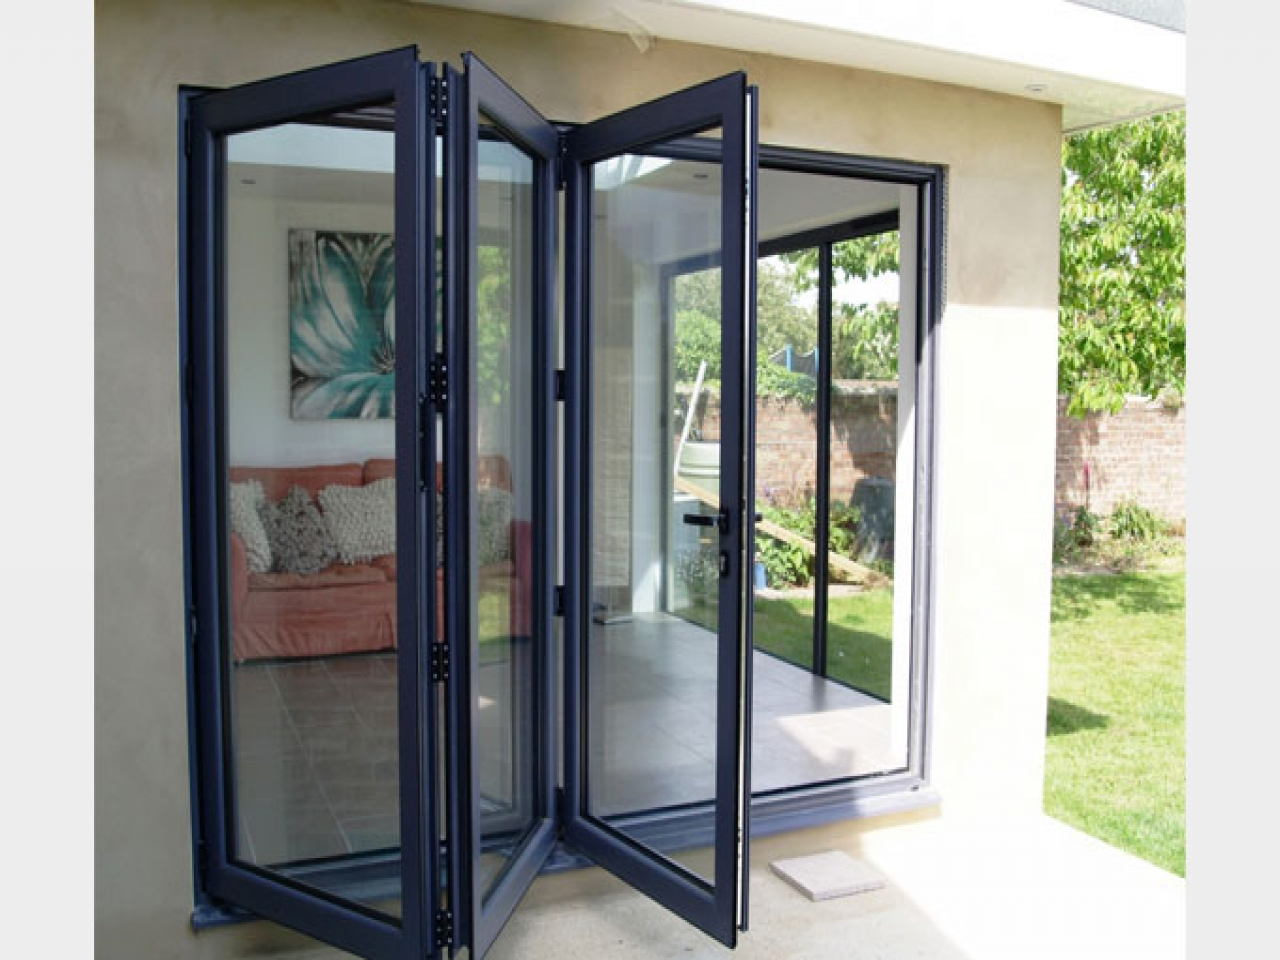 Residential windows doors south coast windows doors Folding window